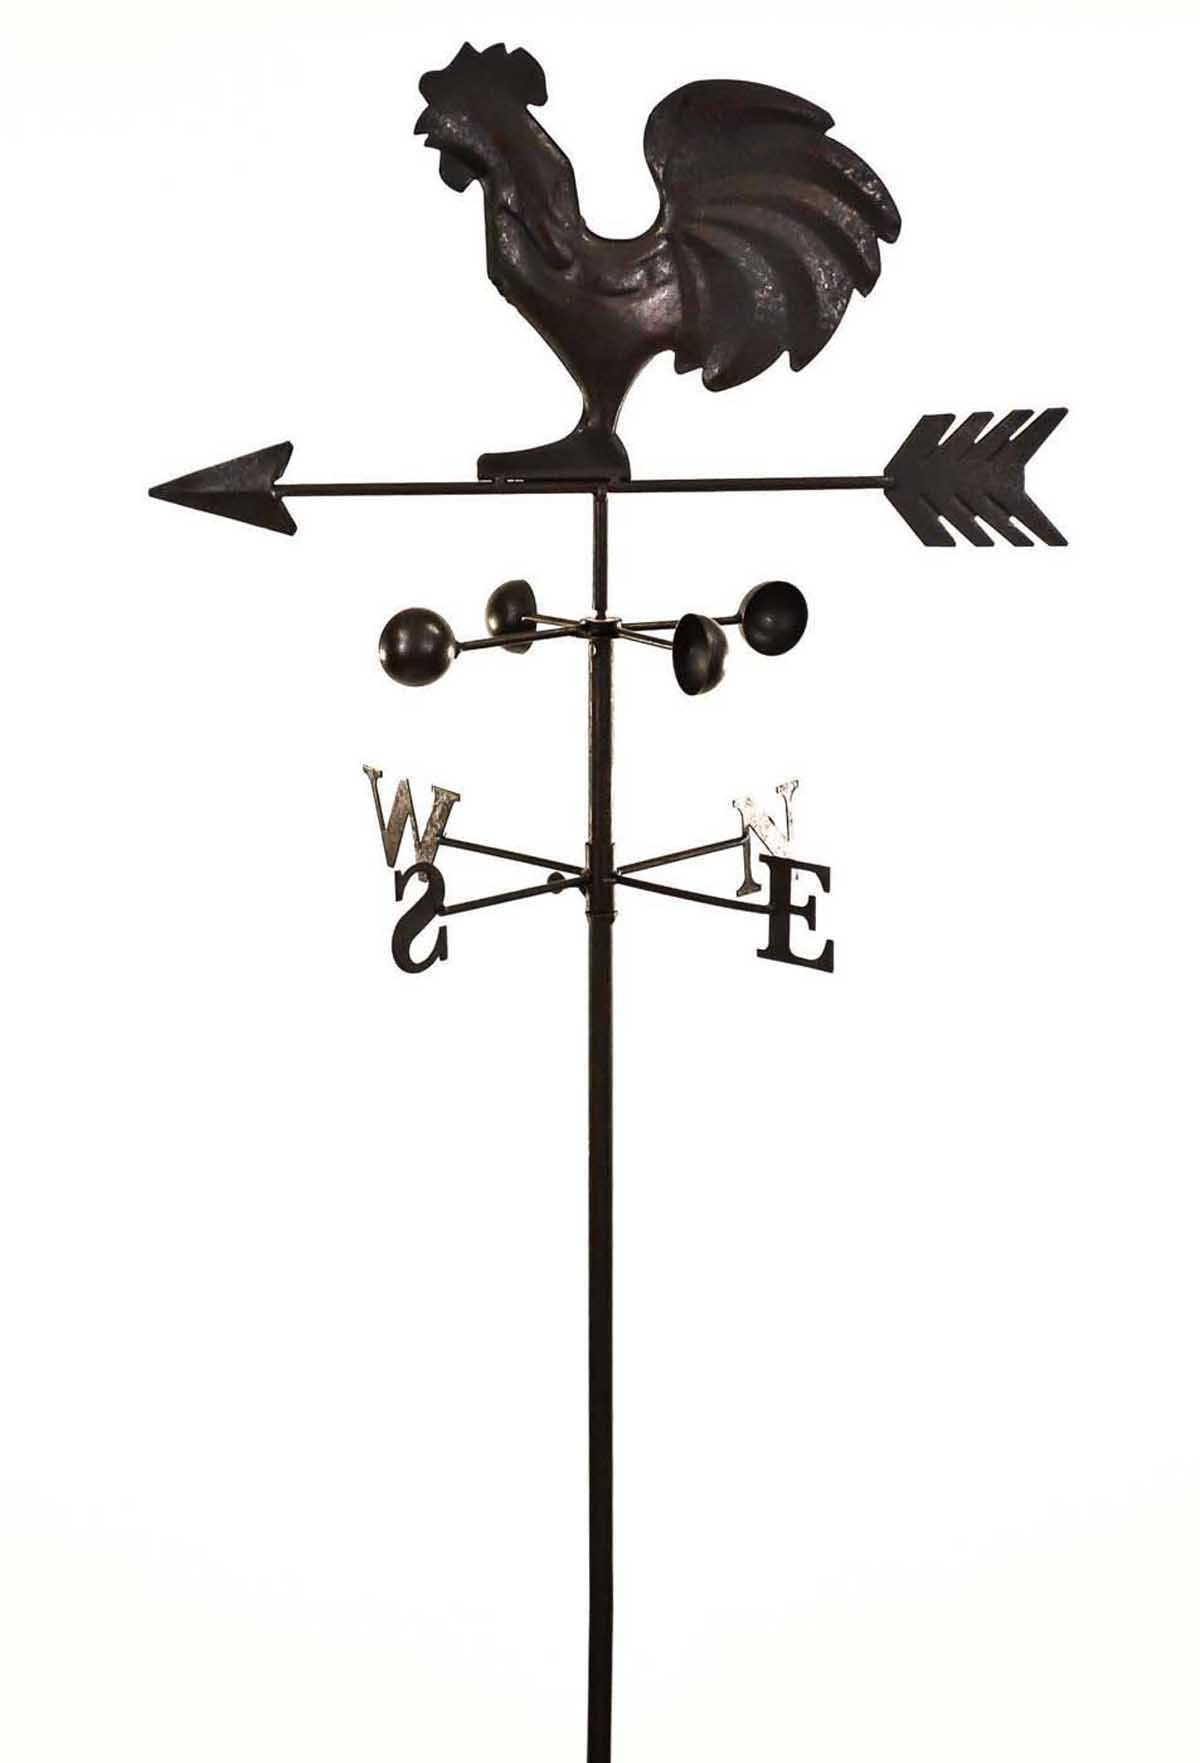 Dark Metal Cockerel Wind Weathervane Weather Vane Garden